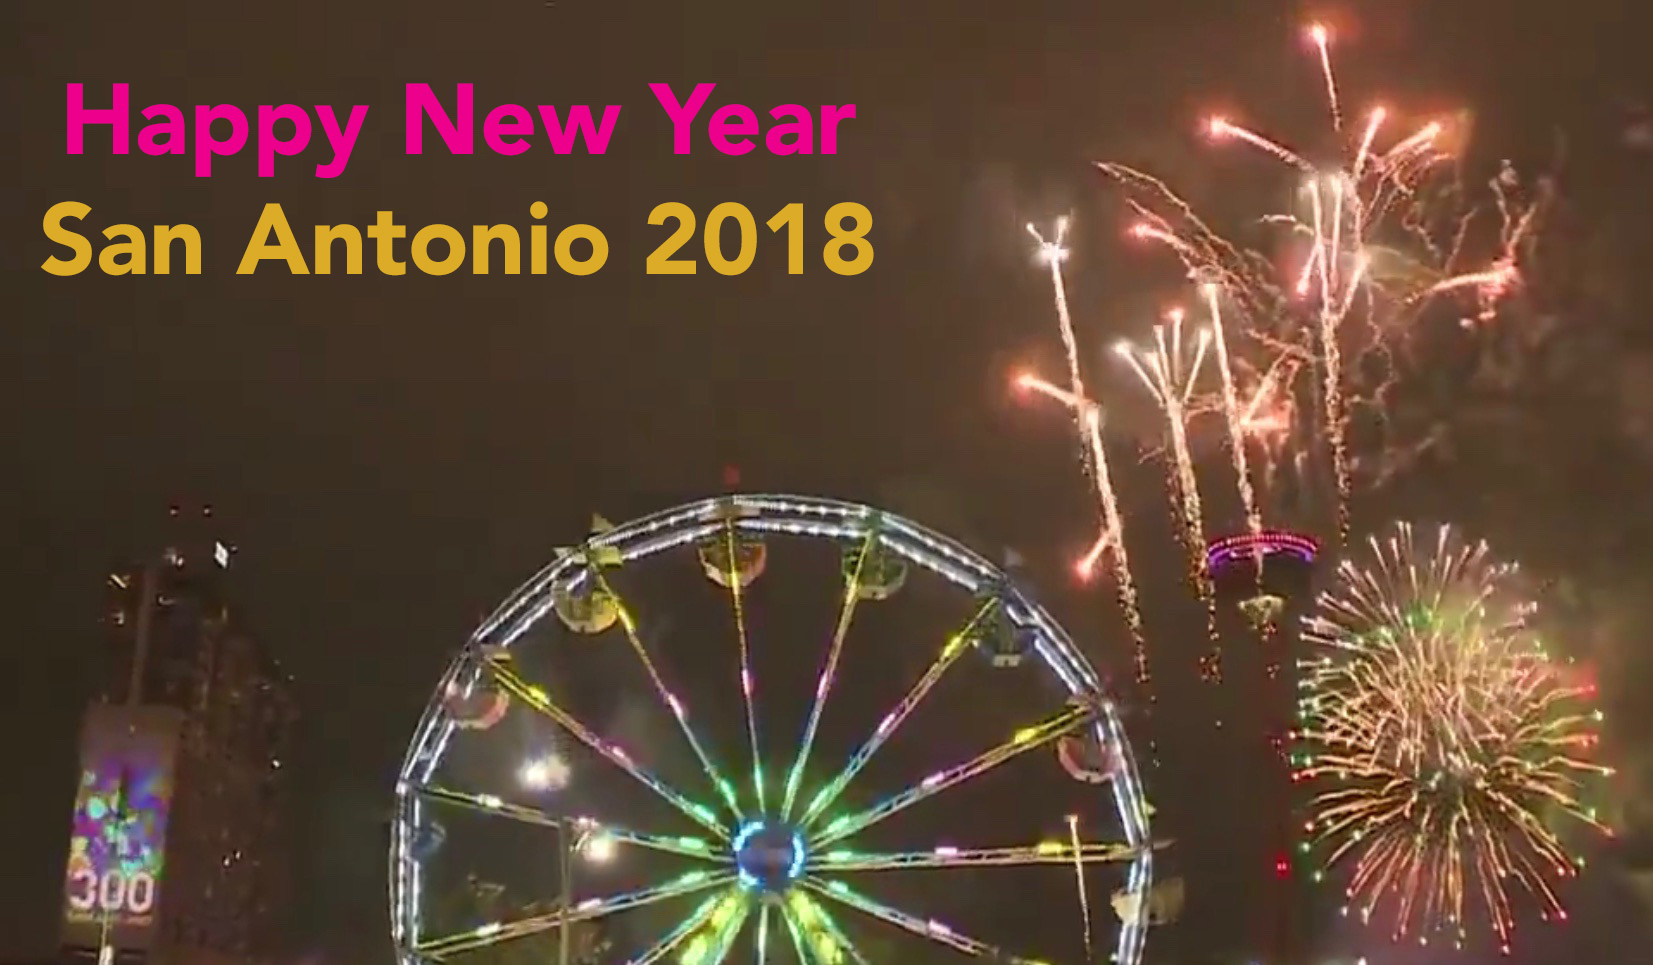 San Antonio New Year 2018